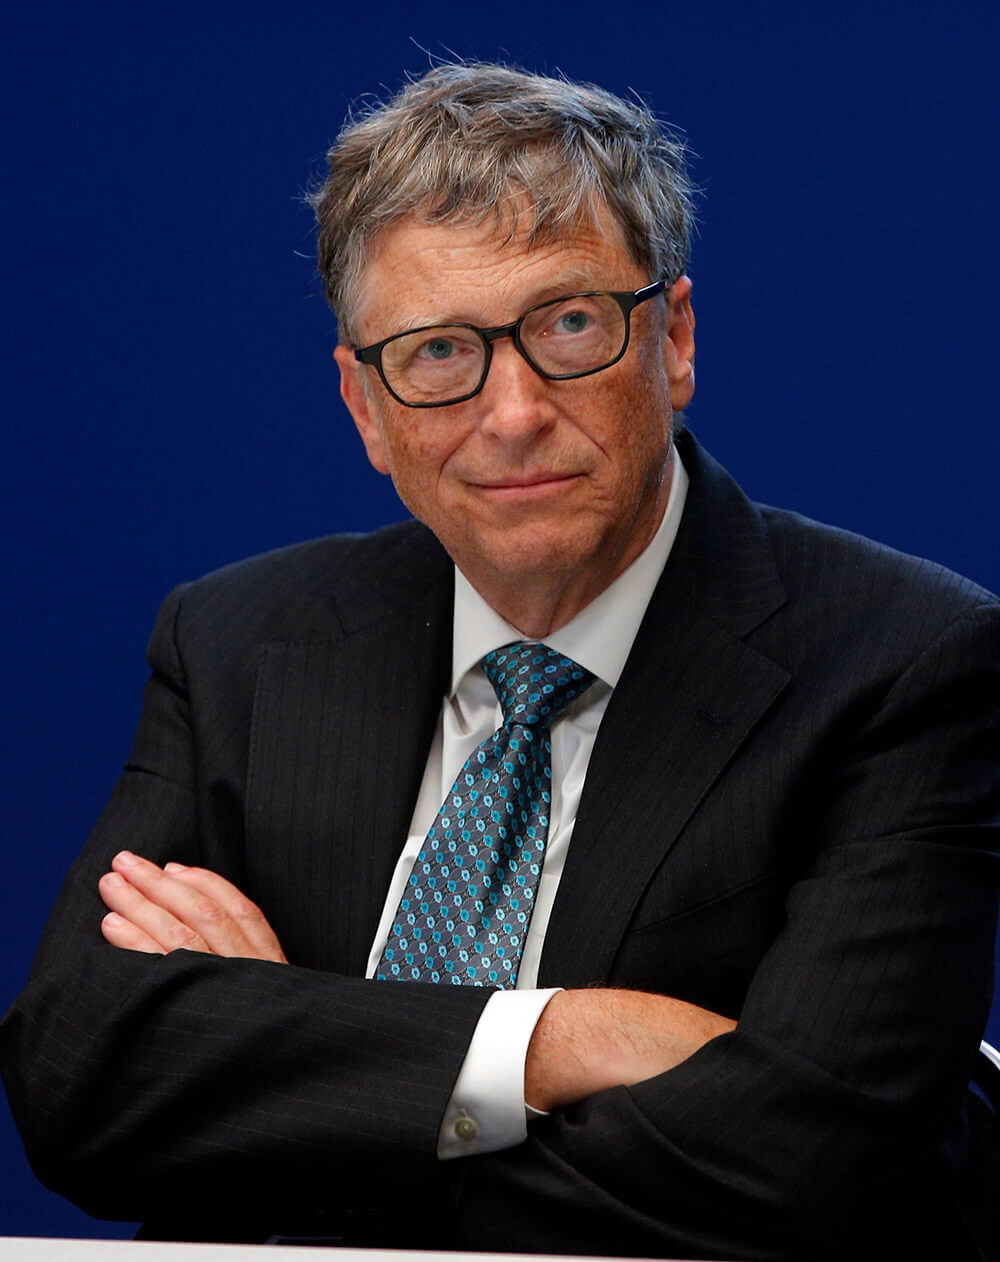 picture of Bill Gates, the richest man in America